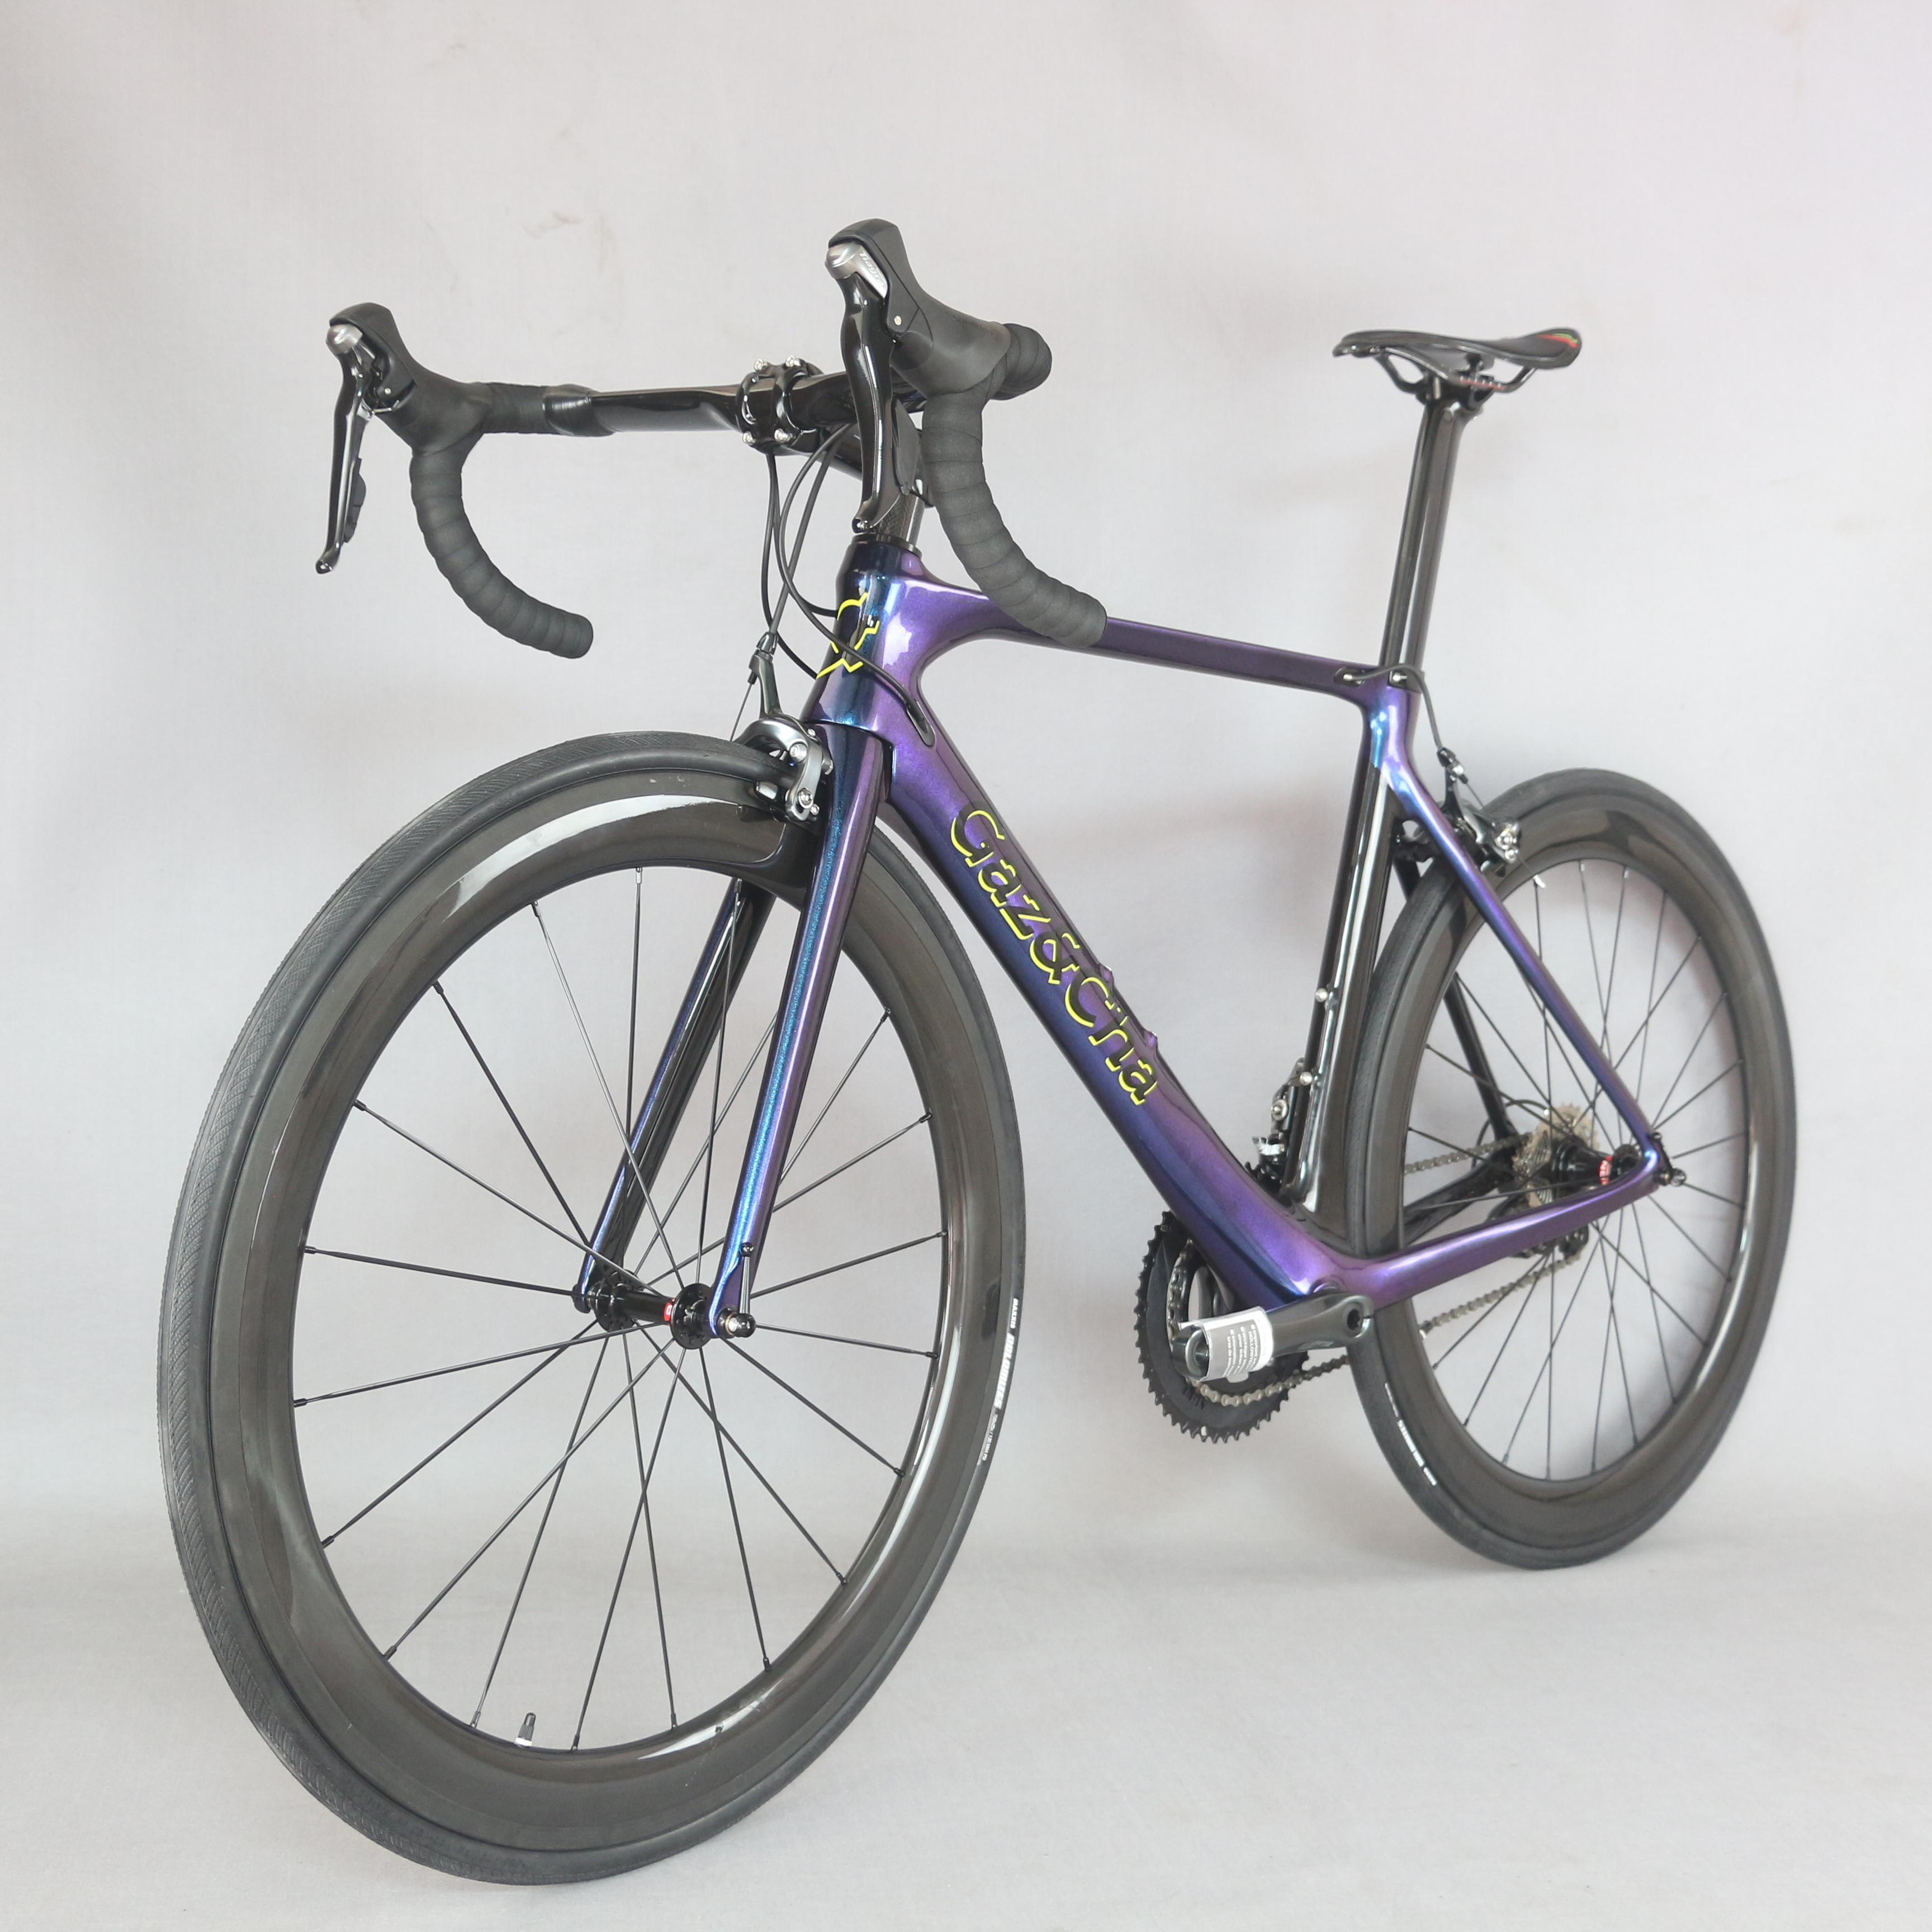 2019 New Chameleon Paint Complete Bicycle Carbon Fiber 700c Road  Bicycle  20 Speed Complete Bicicleta  Adopted SHIMAO Brake-470